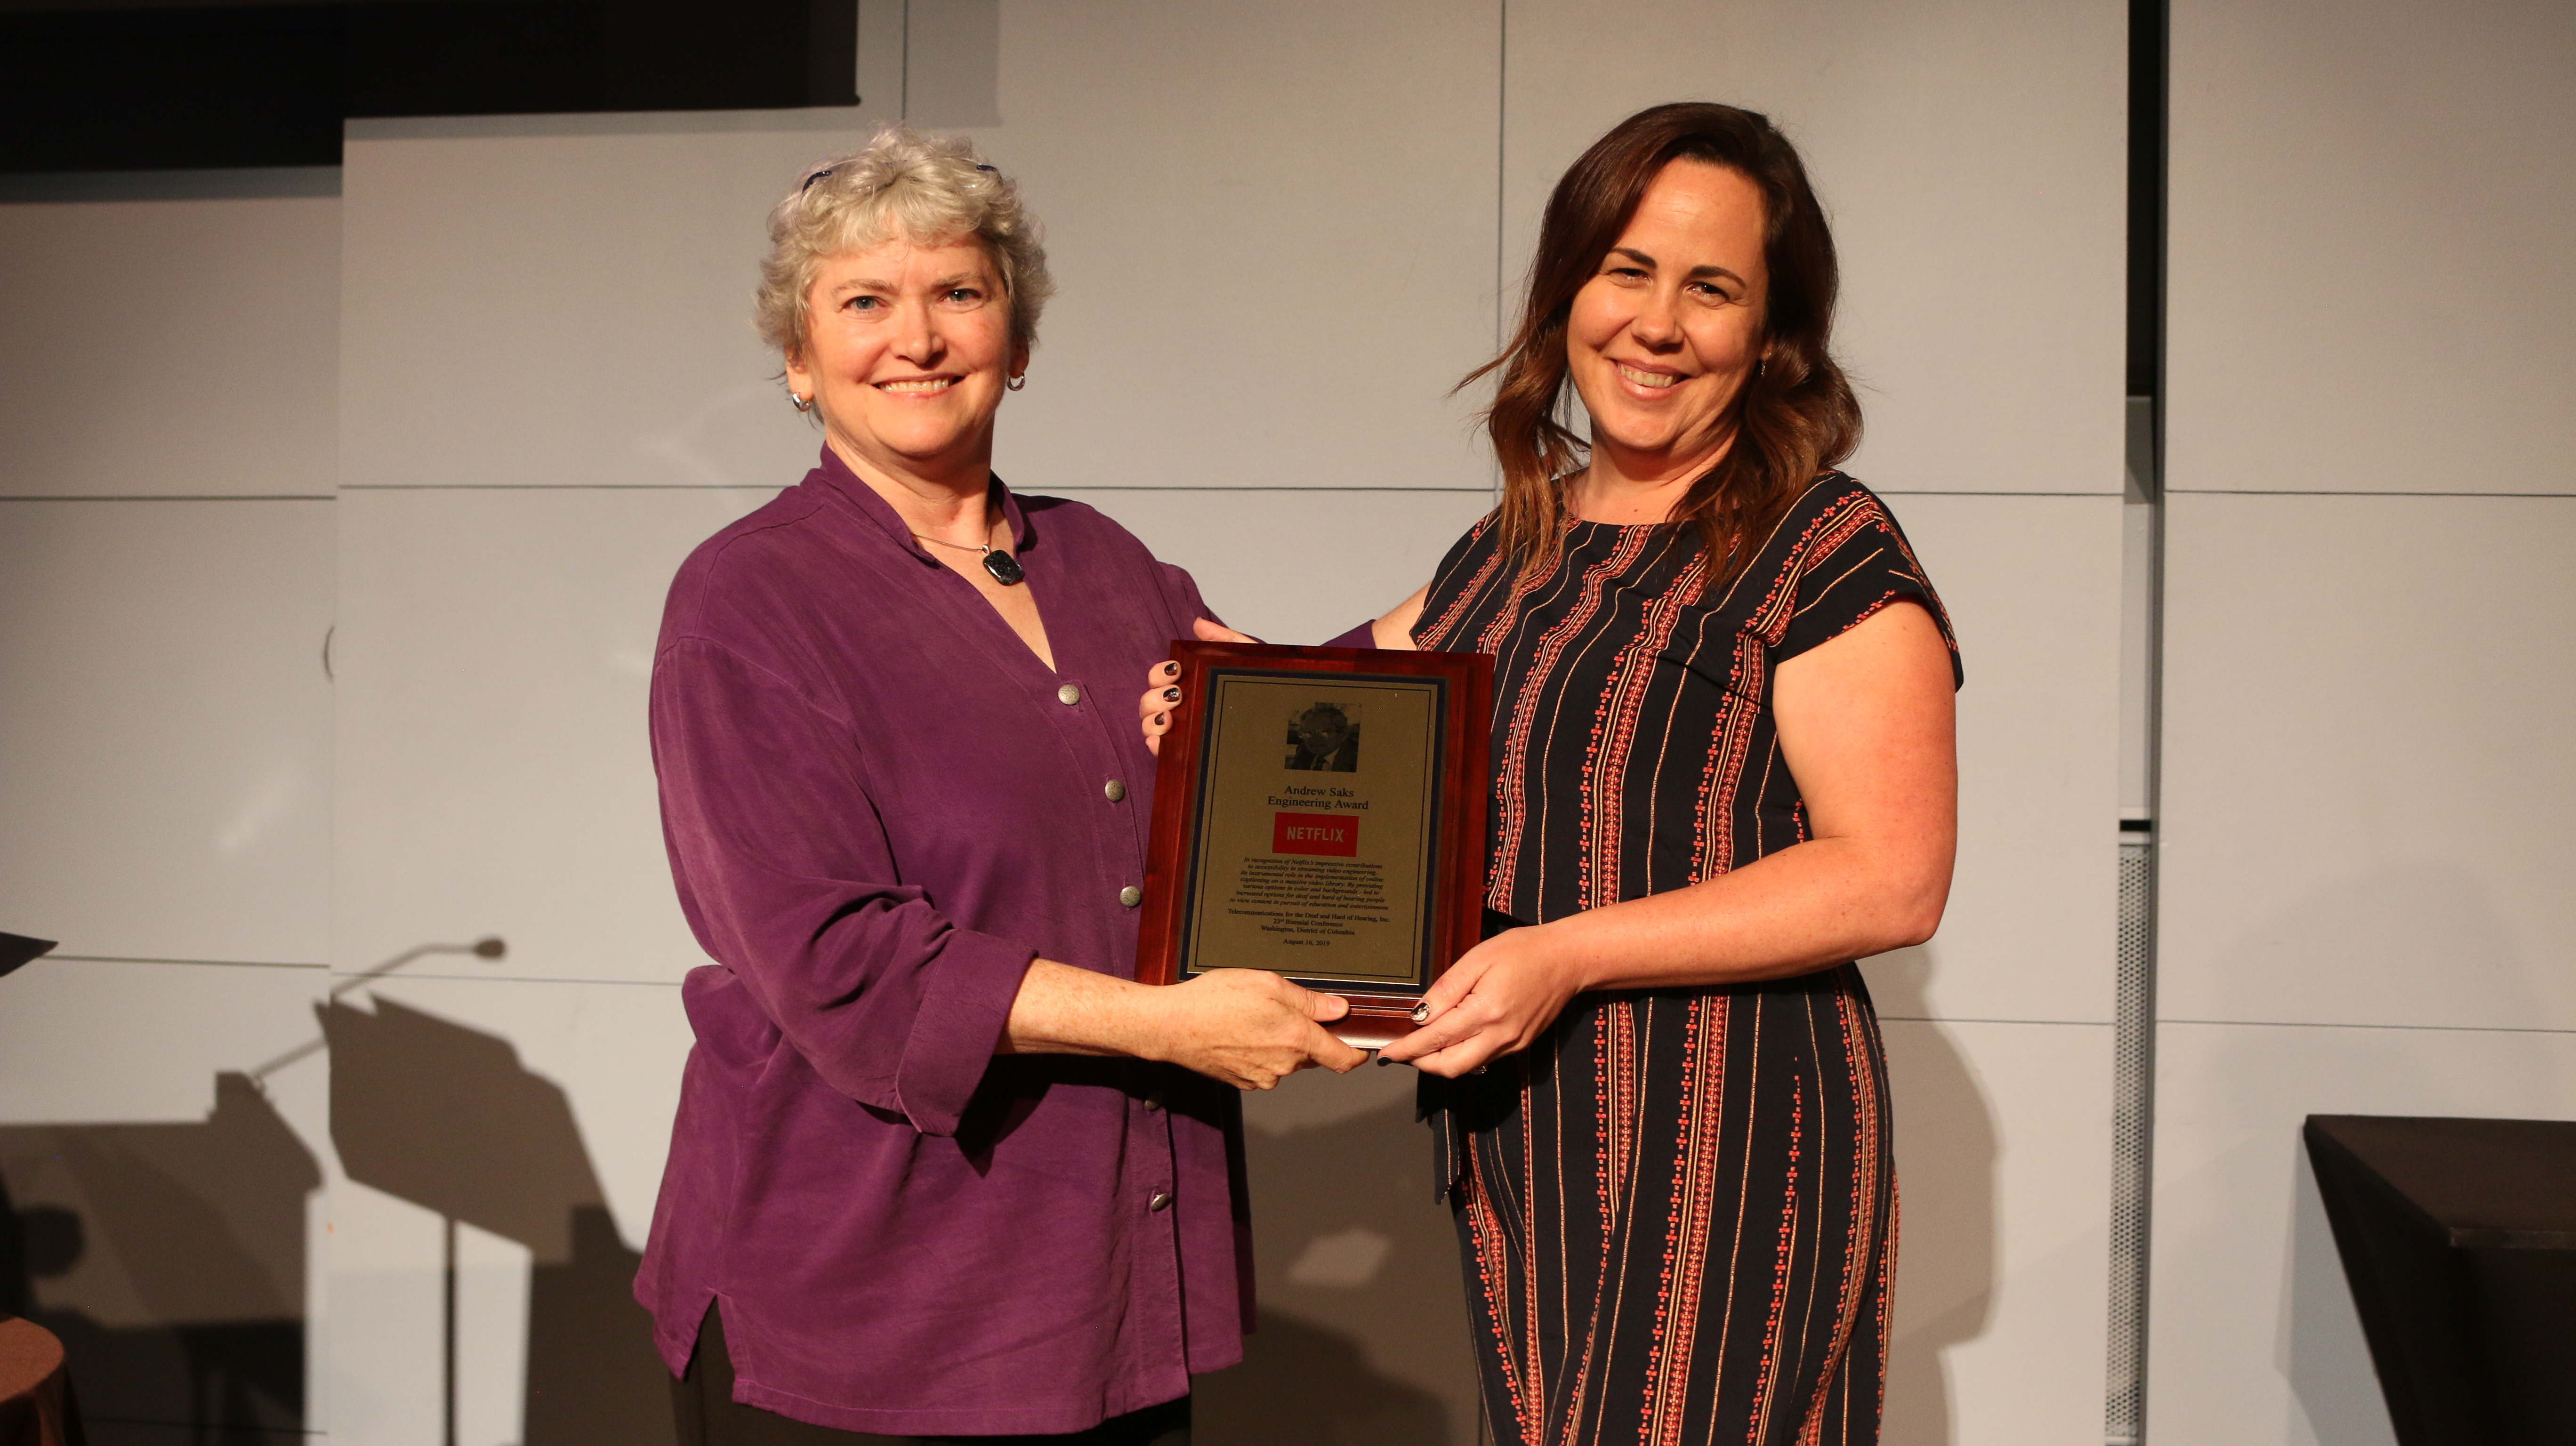 White female with salt and peppered hair wearing purple button down blouse holding a plaque with a white female wearing a vertical patterned dress